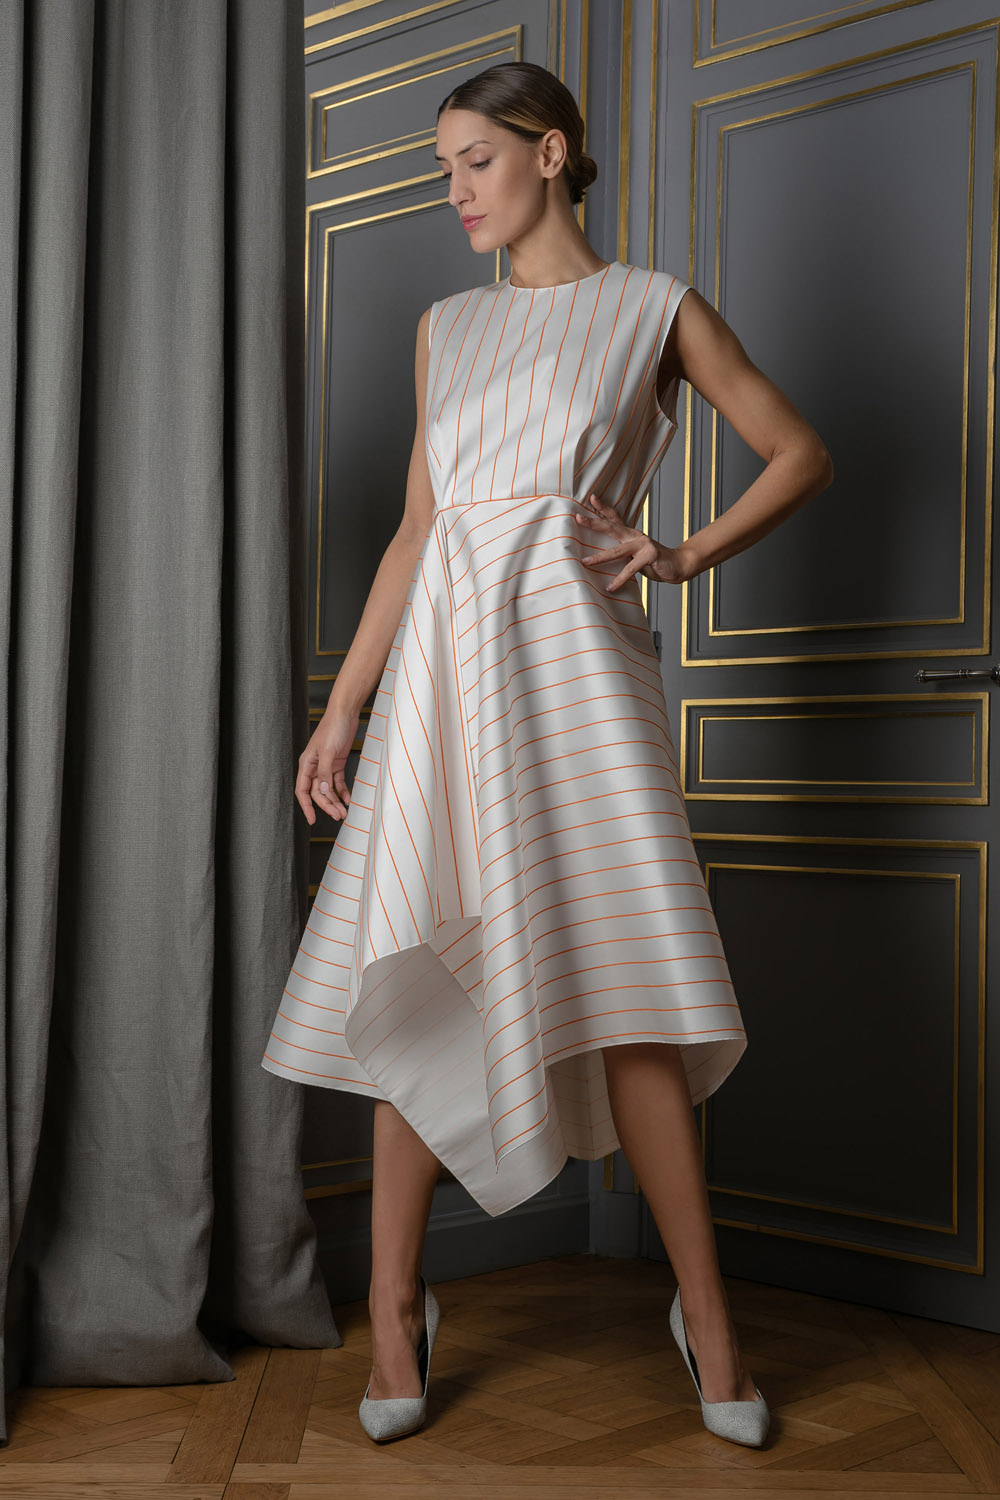 A-line dress with an asymmetrical hemline